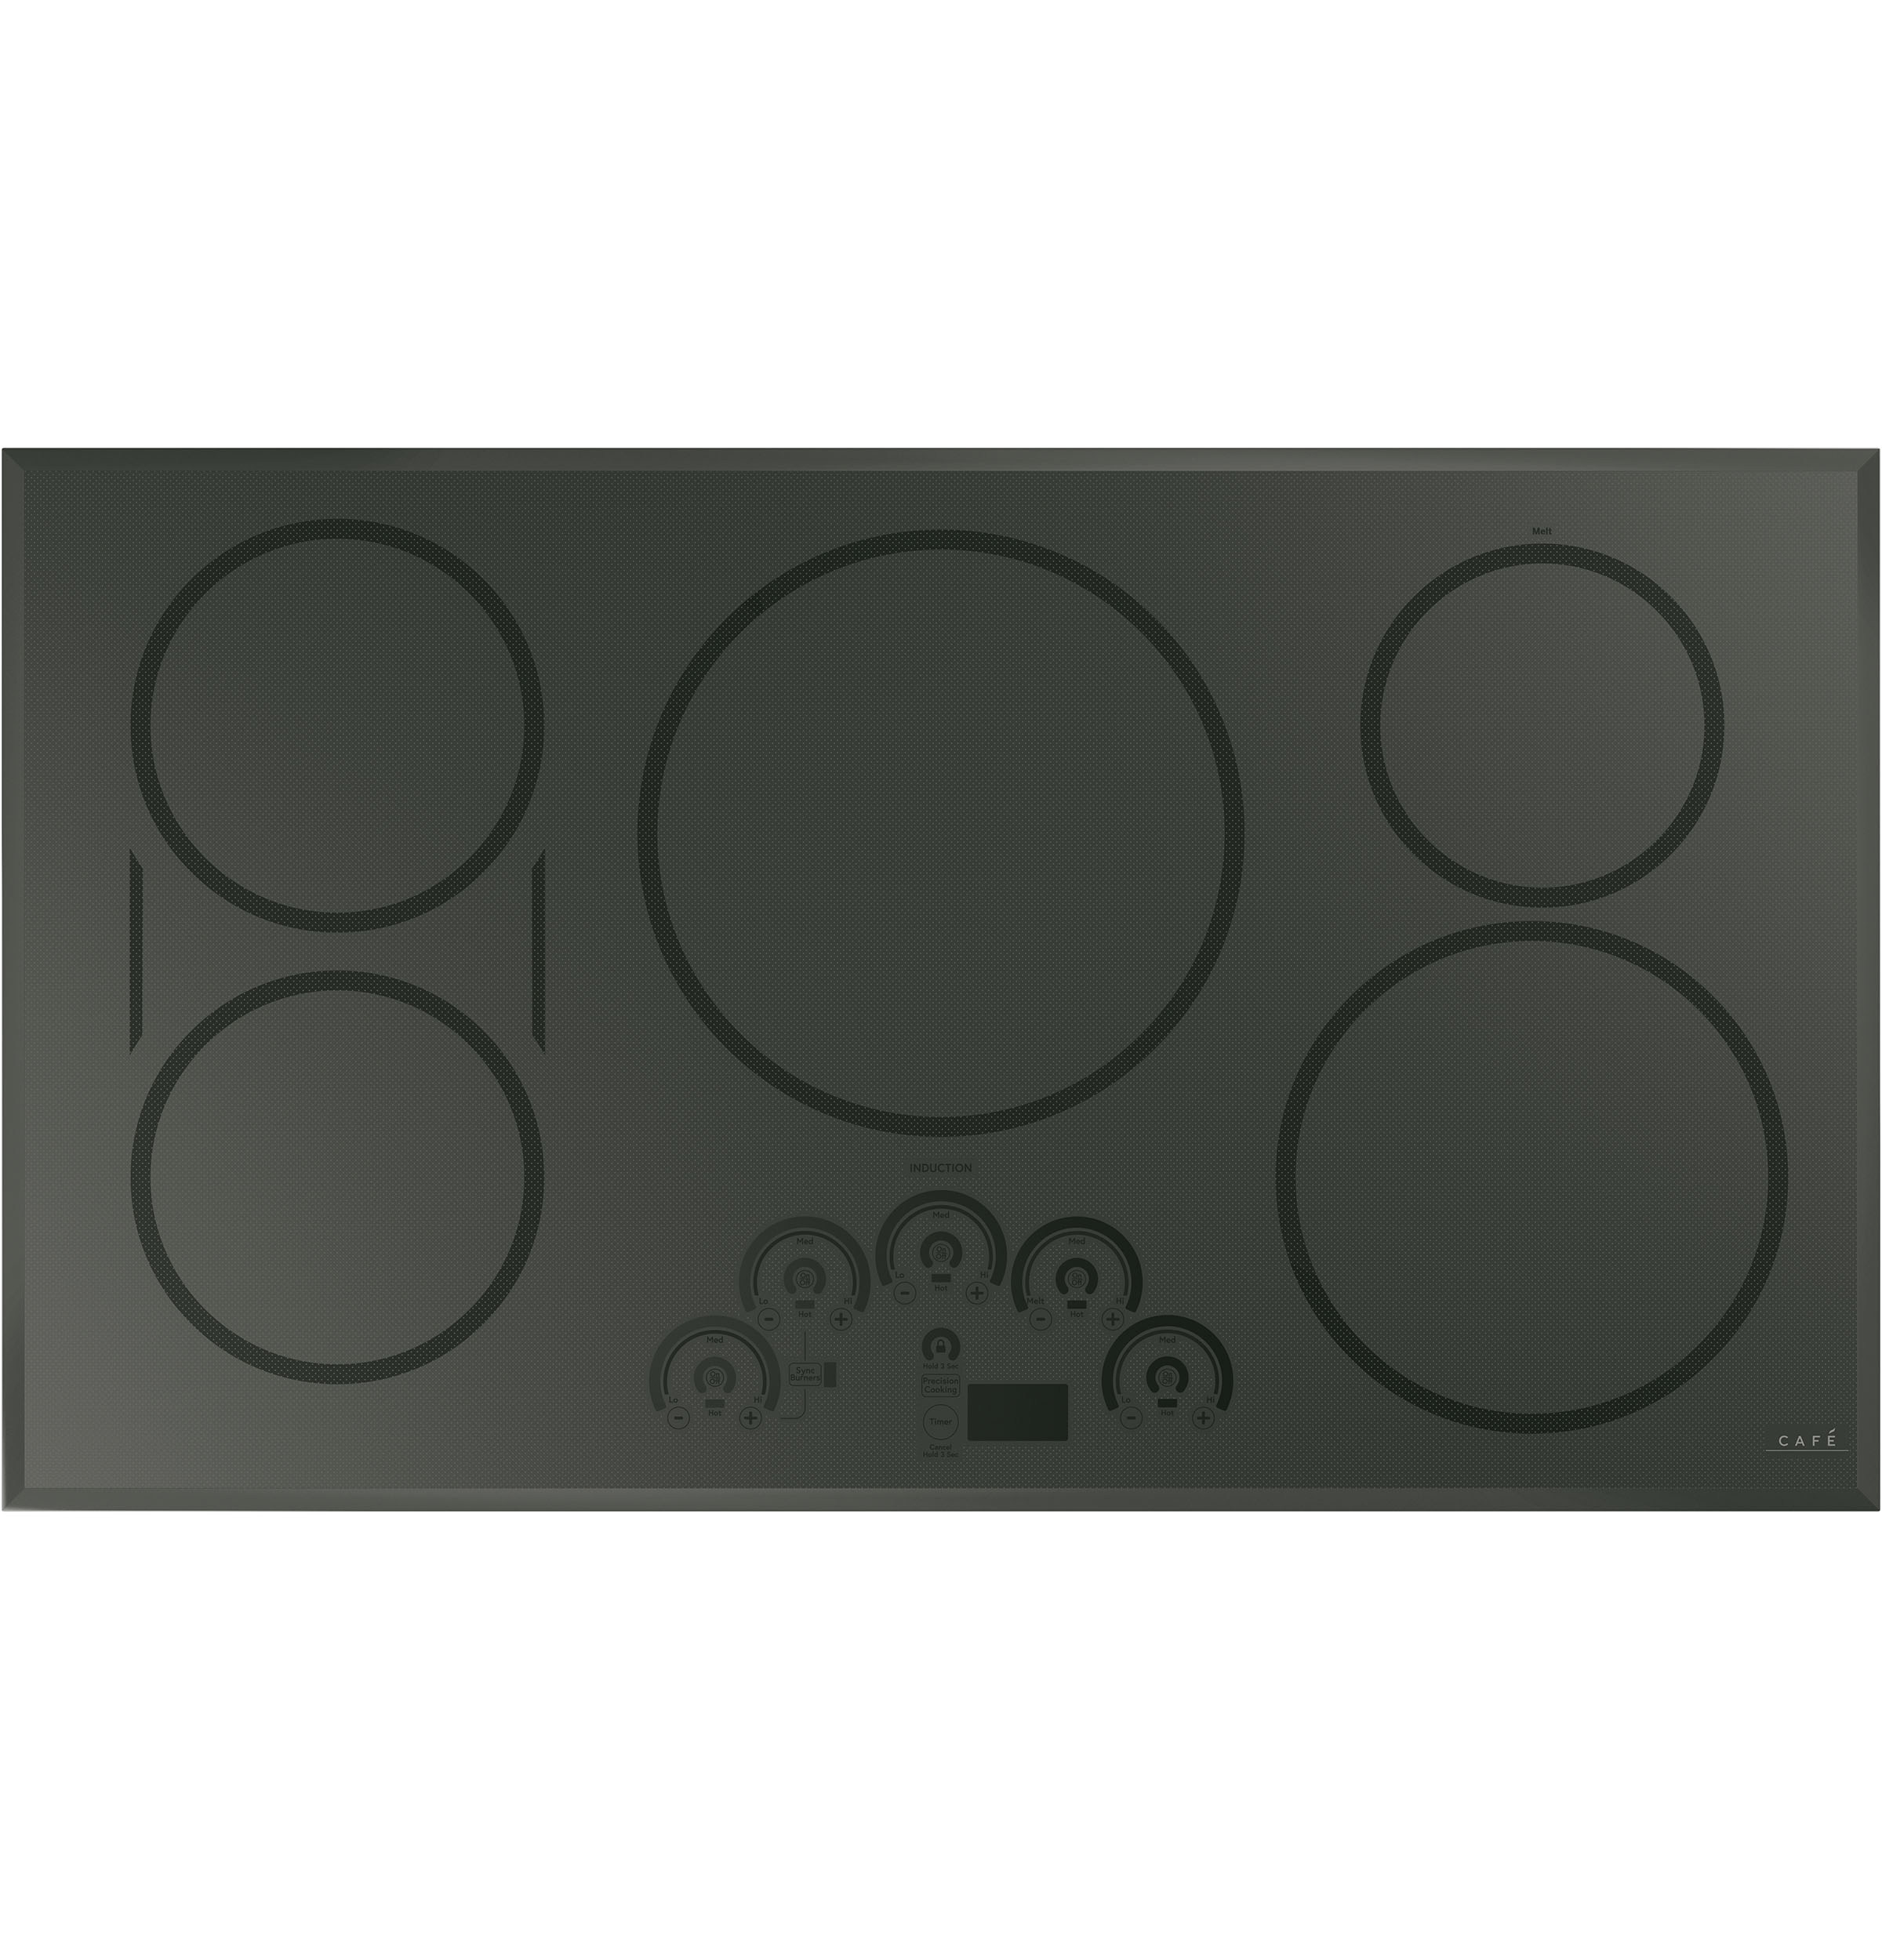 "Cafe Café™ 36"" Smart Touch Control Induction Cooktop"